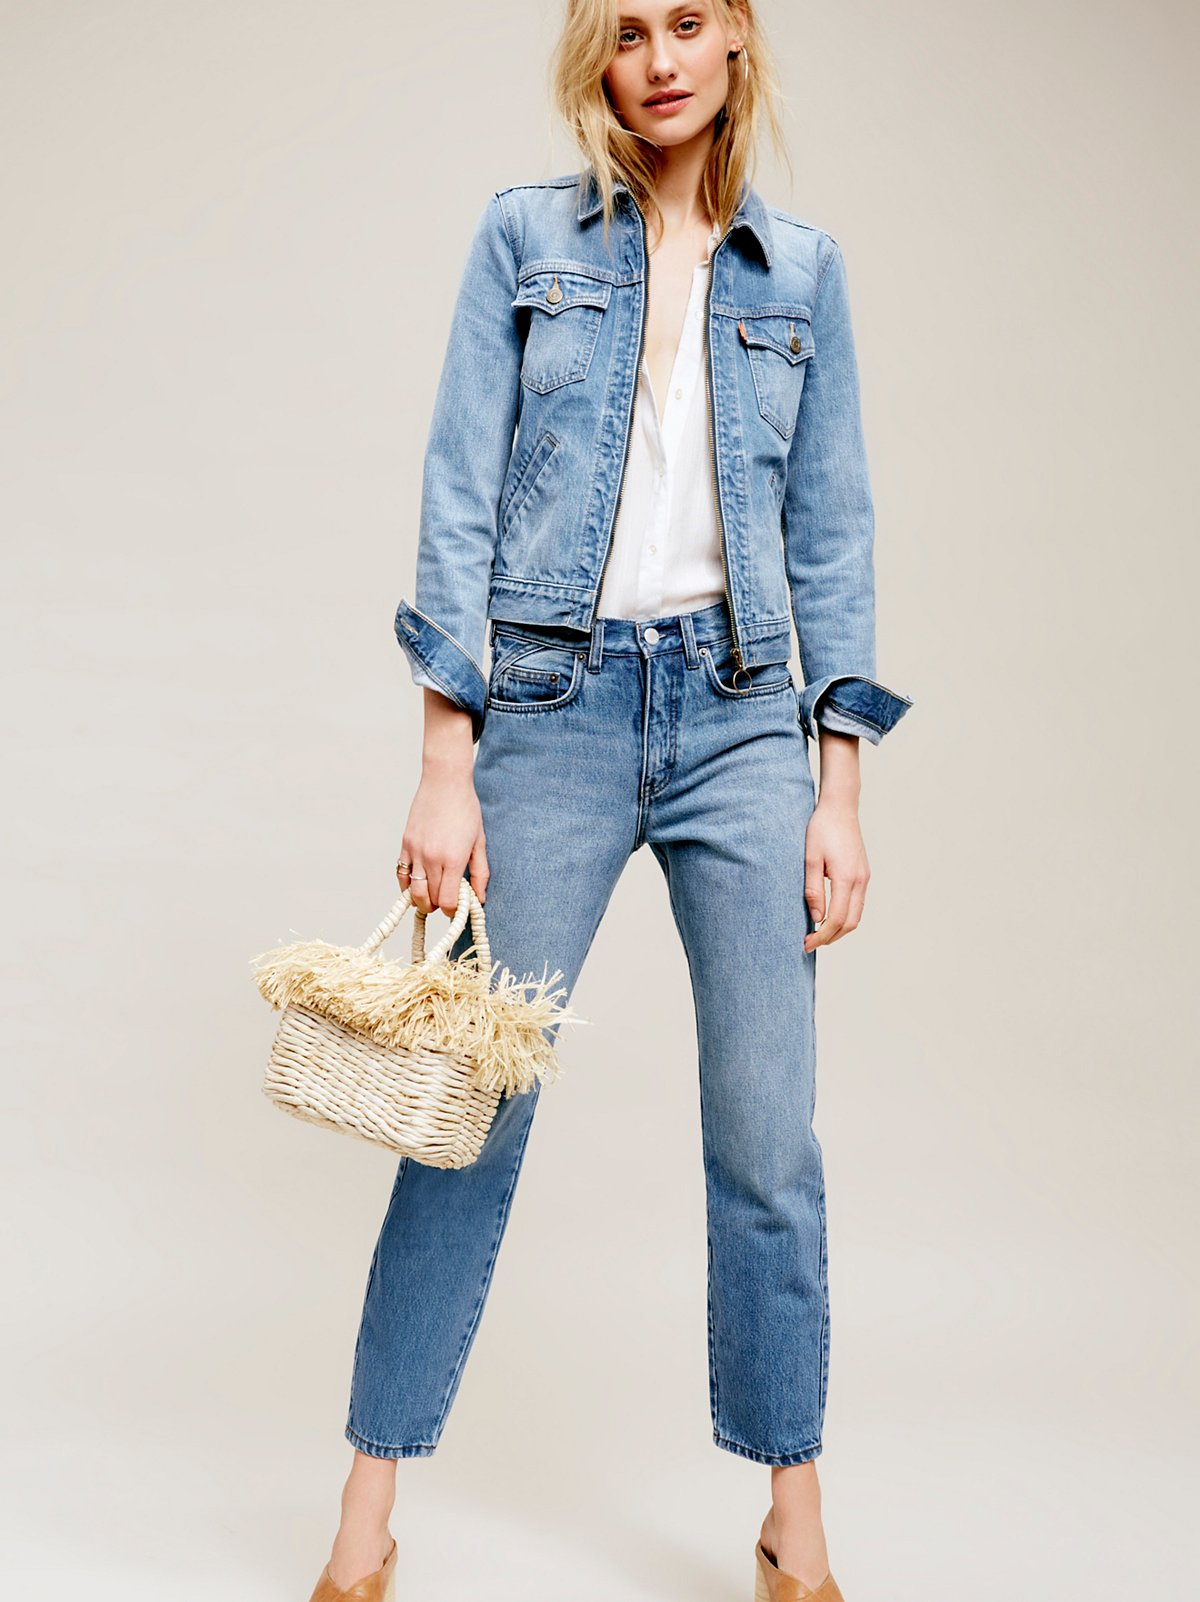 All Day Everyday Jean